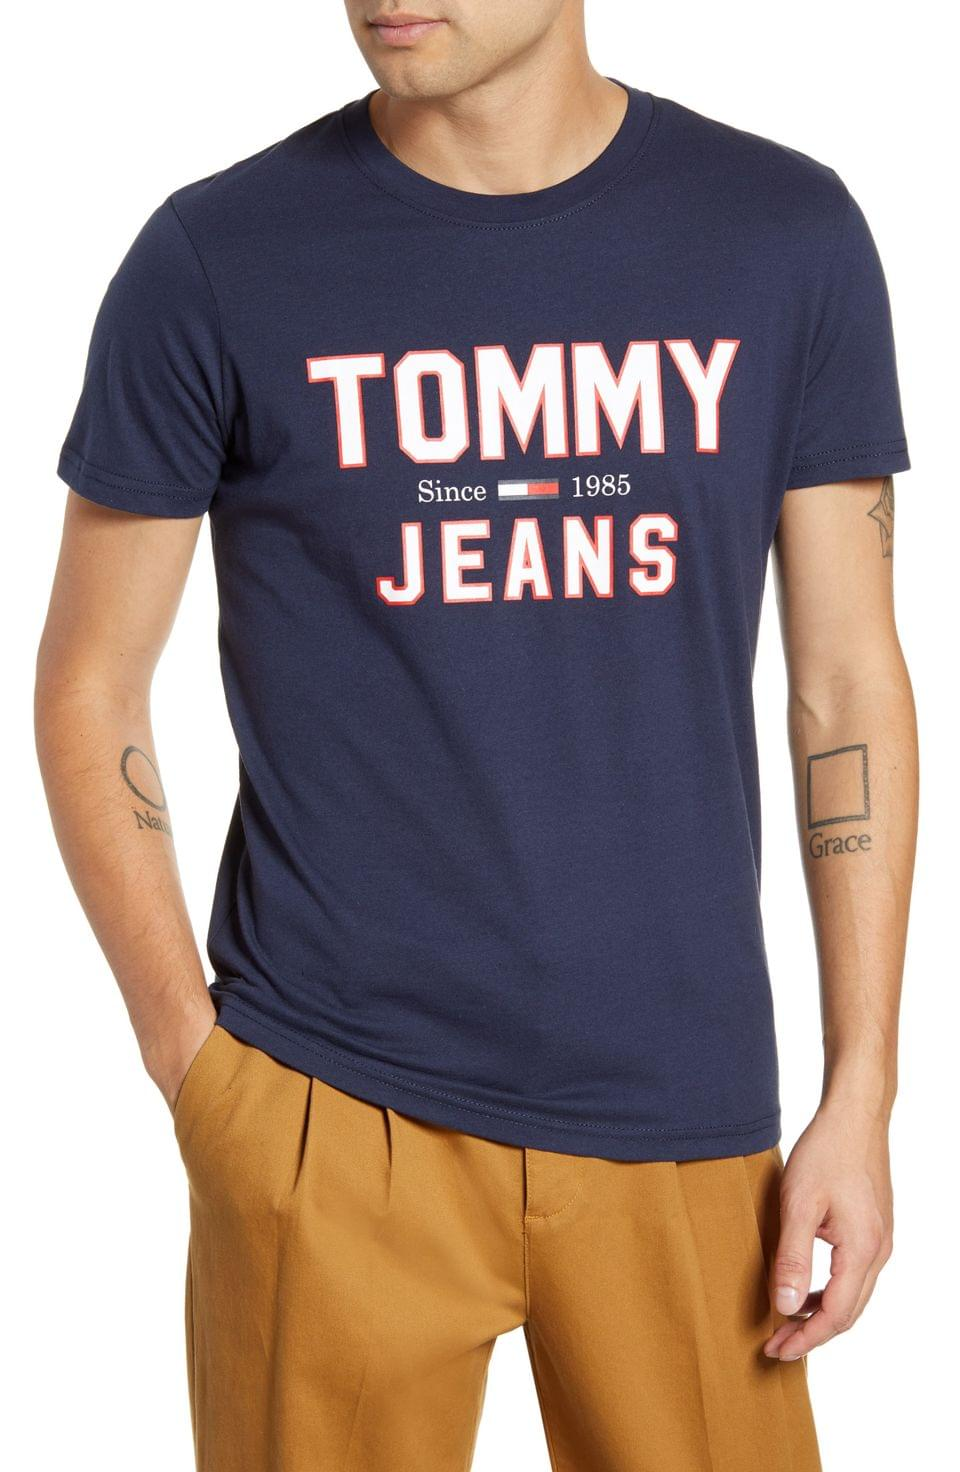 Men's TOMMY JEANS TJM Essential 1985 Logo T-Shirt